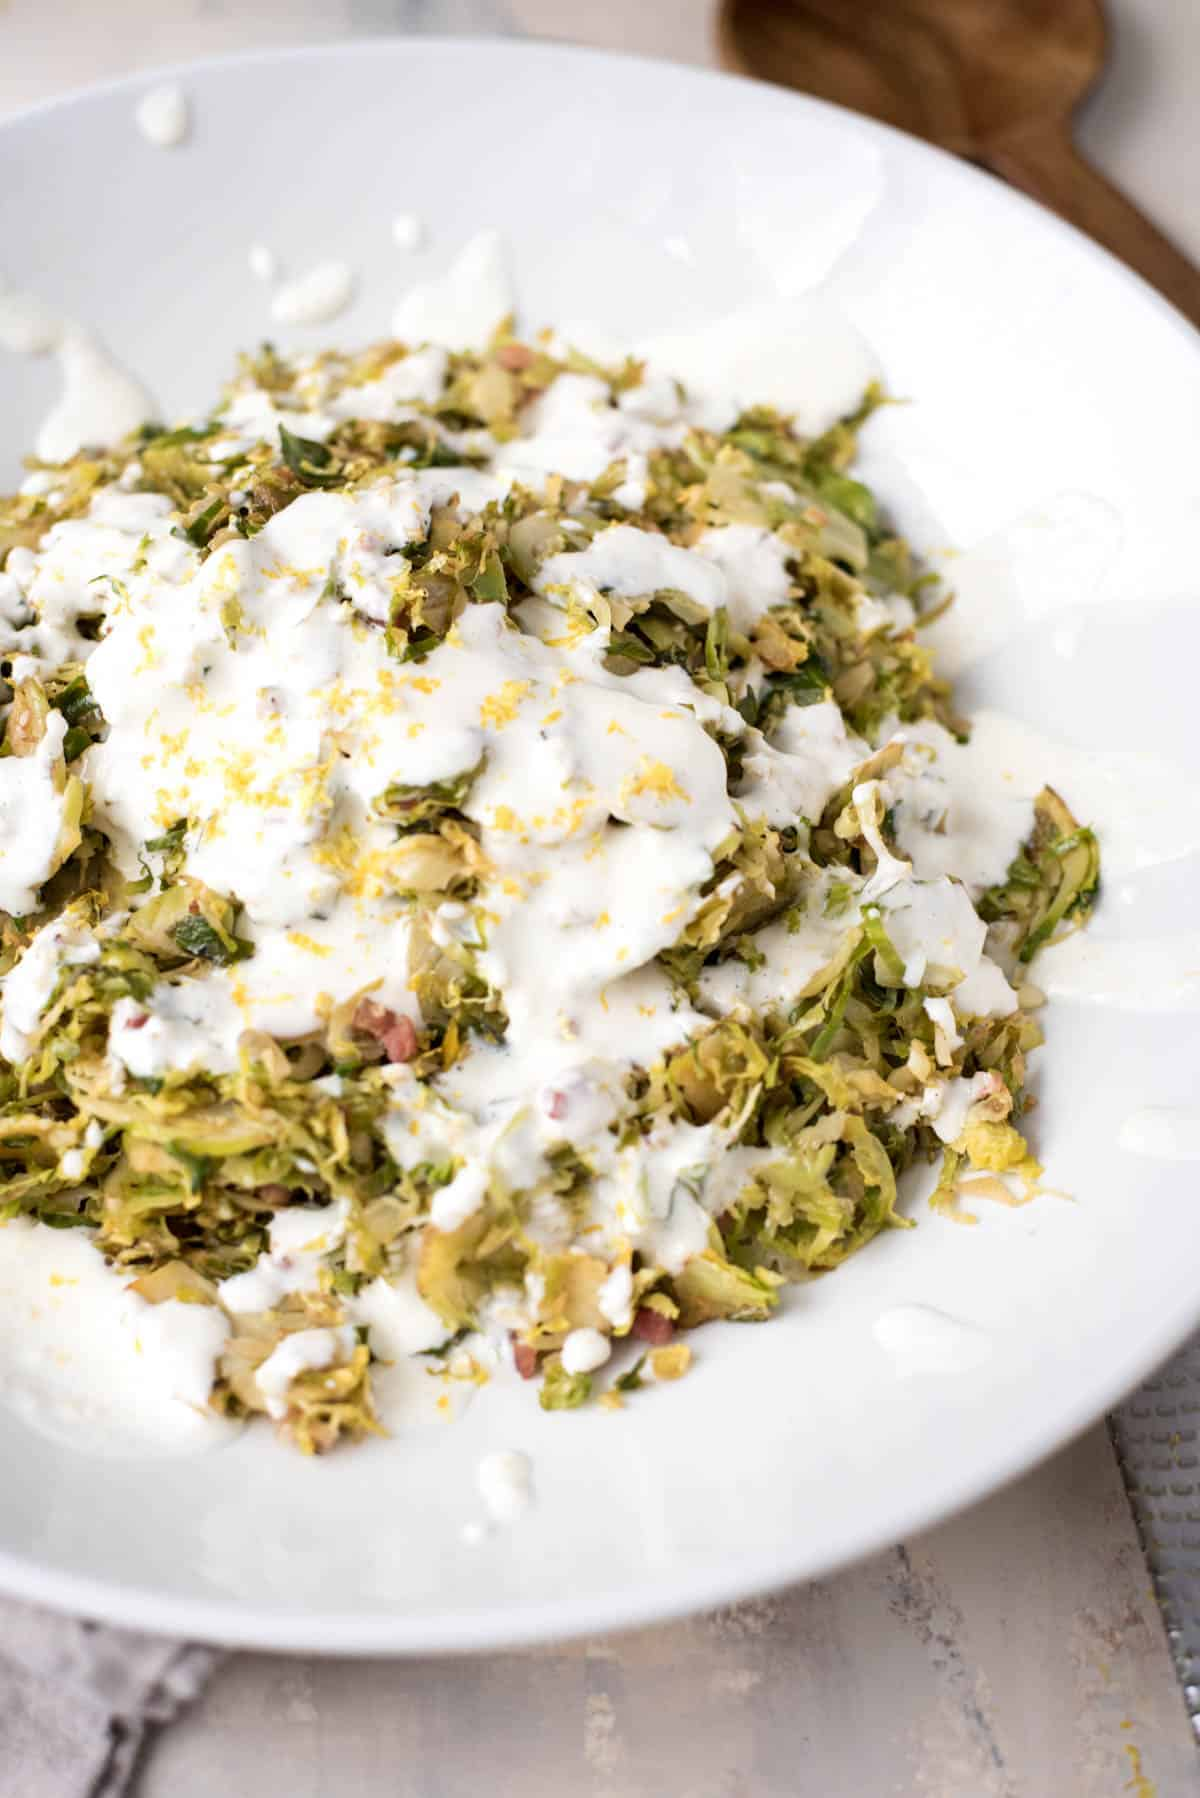 Braised Brussel Sprouts with Lemon Garlic Aioli